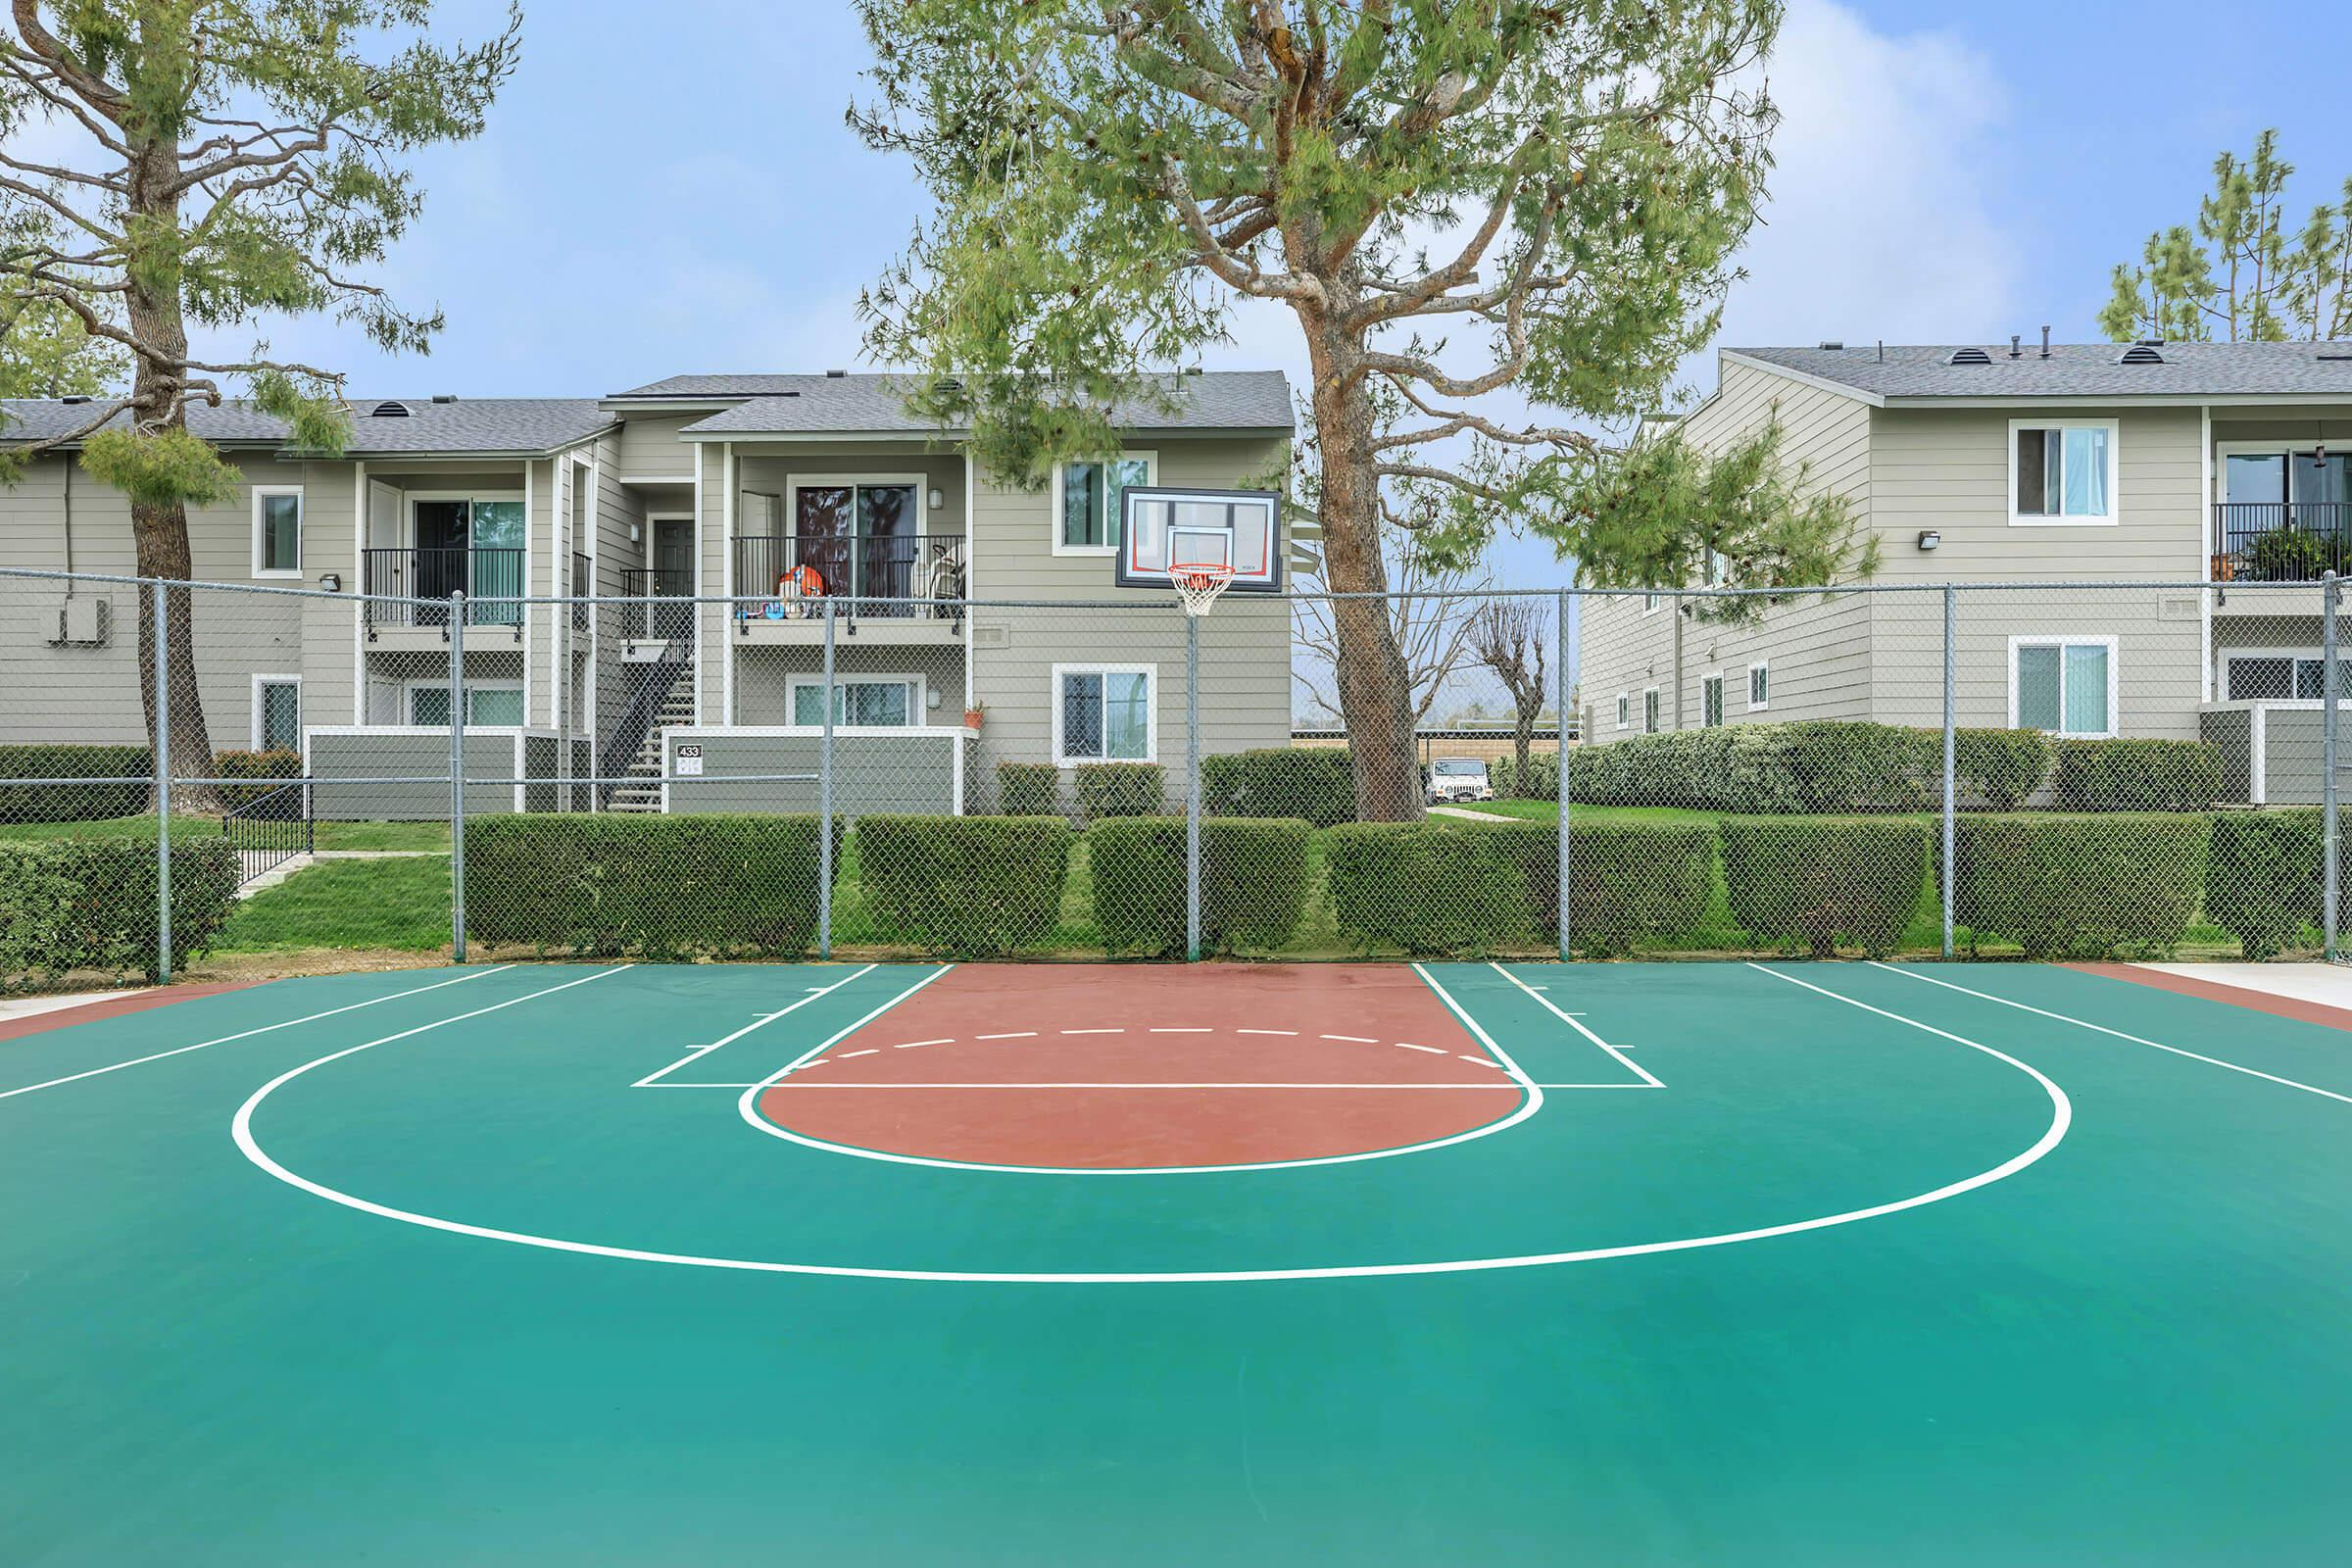 a couple of lawn chairs sitting on a basketball court